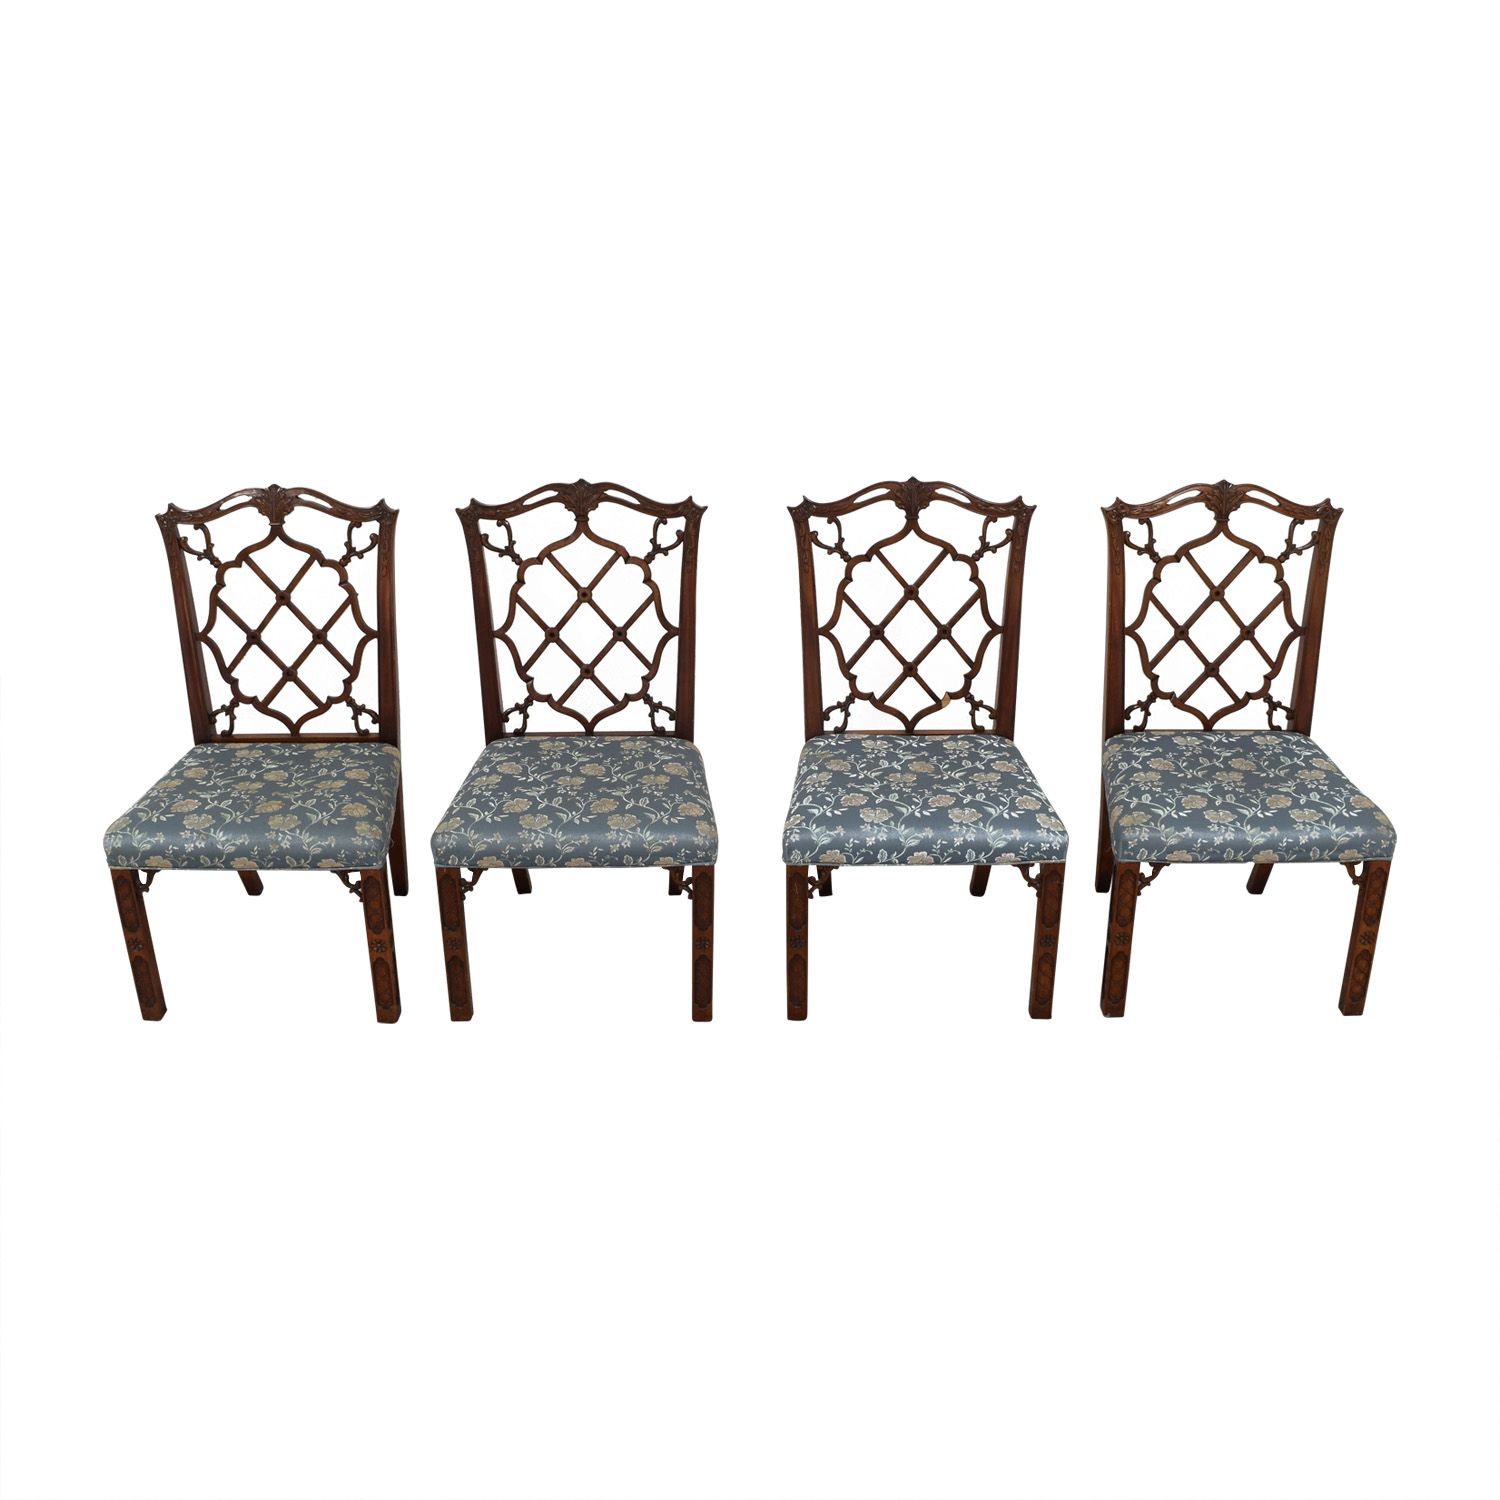 Chelsea House Chelsea House Custom Upholstered Chairs on sale